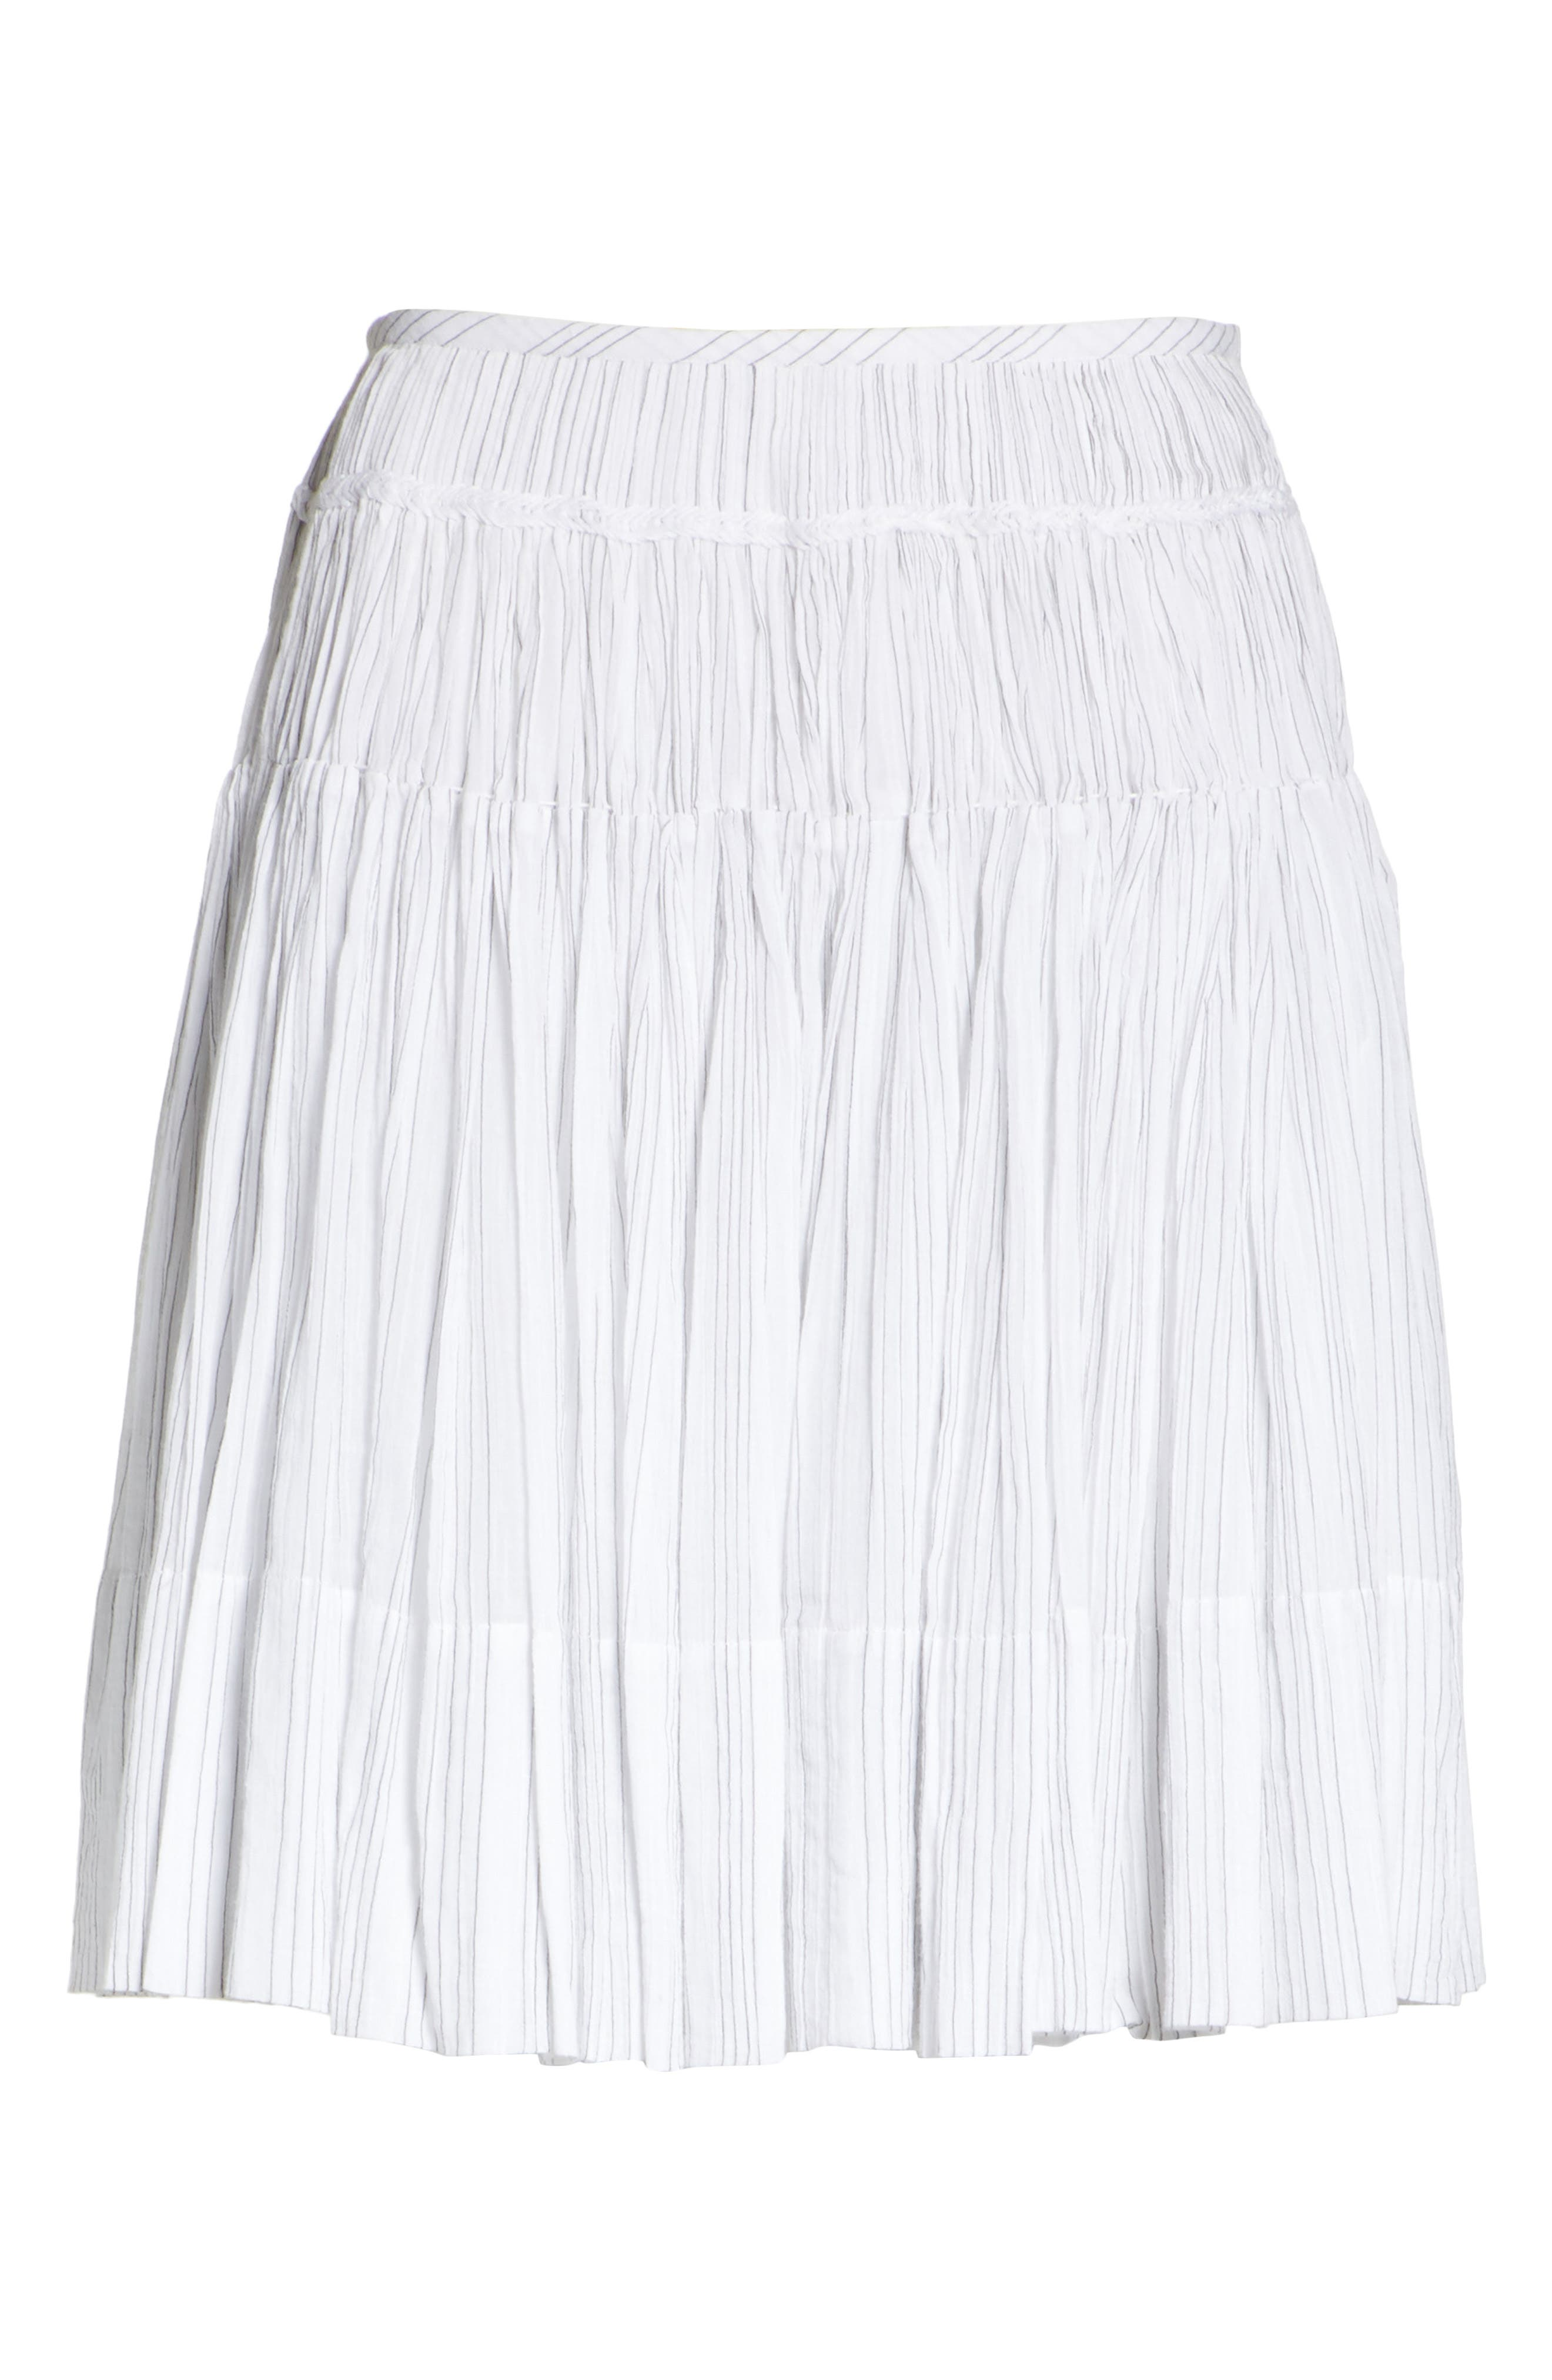 Variegated Stripe Pleat Skirt,                             Alternate thumbnail 6, color,                             Optic White/ Black